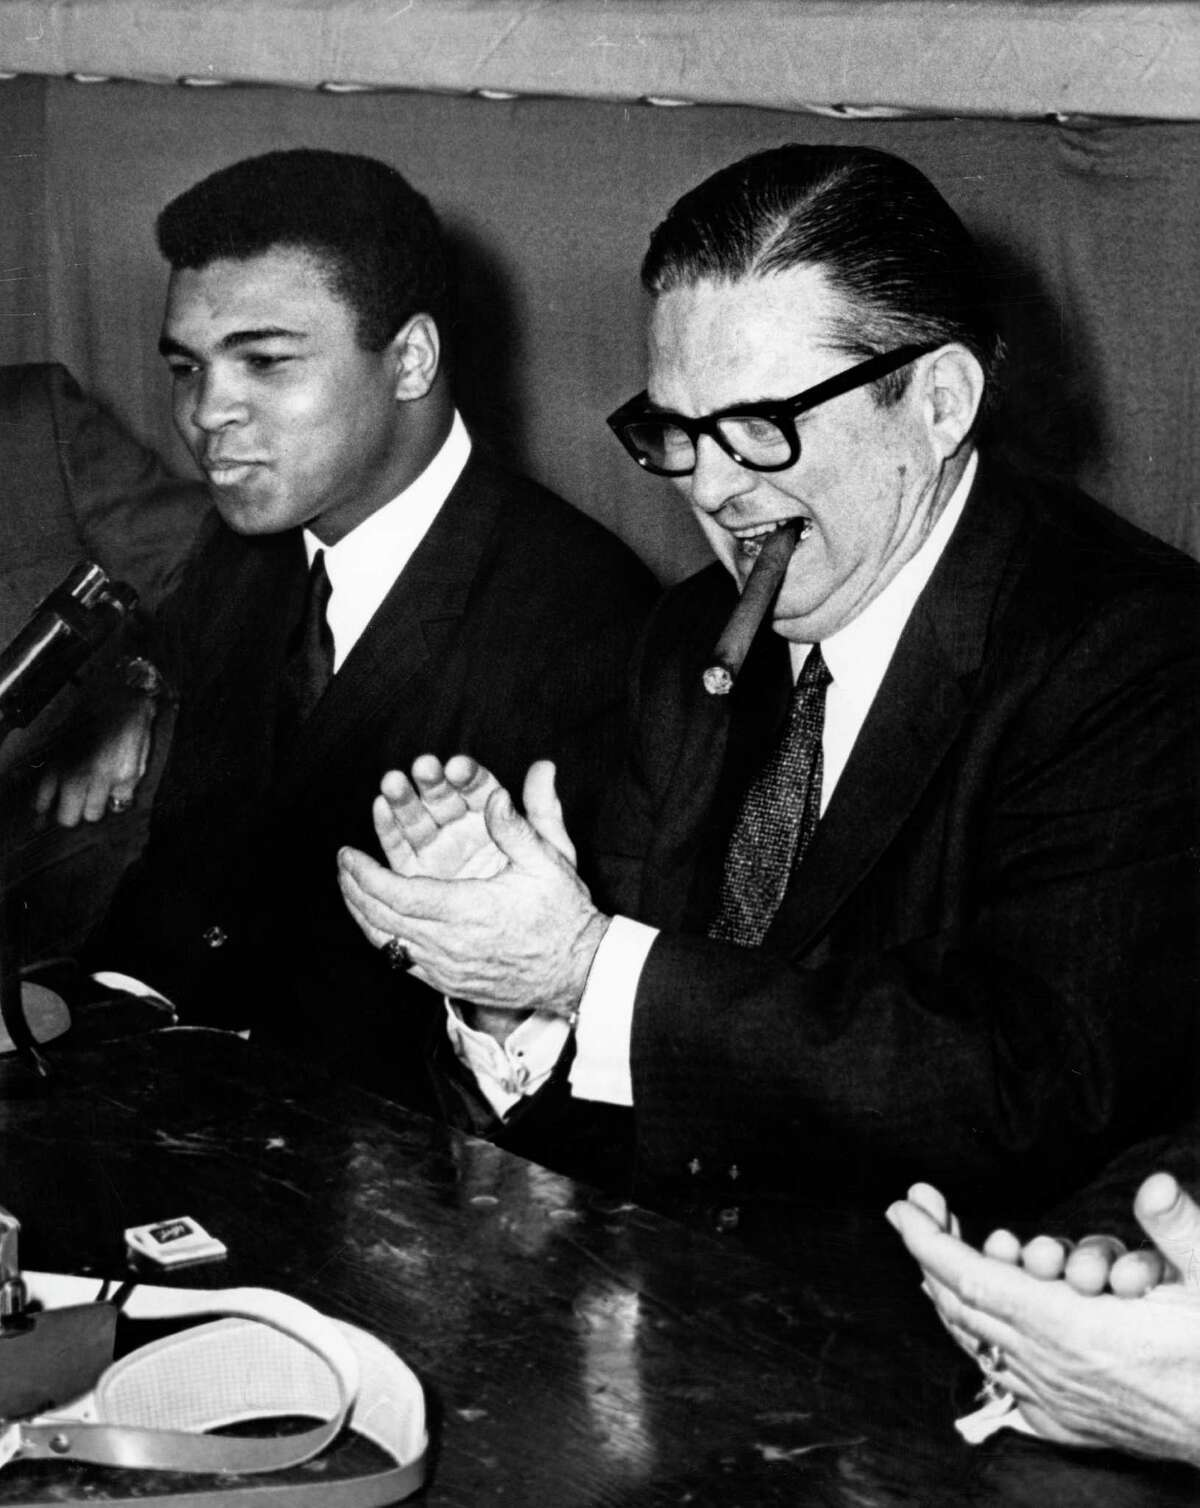 Muhammad Ali and Roy Hofheinz share a laugh at a press conference on Jan. 10, 1967, after Ali arrived in Houston to train for his fight against Ernie Terrell in the Astrodome.